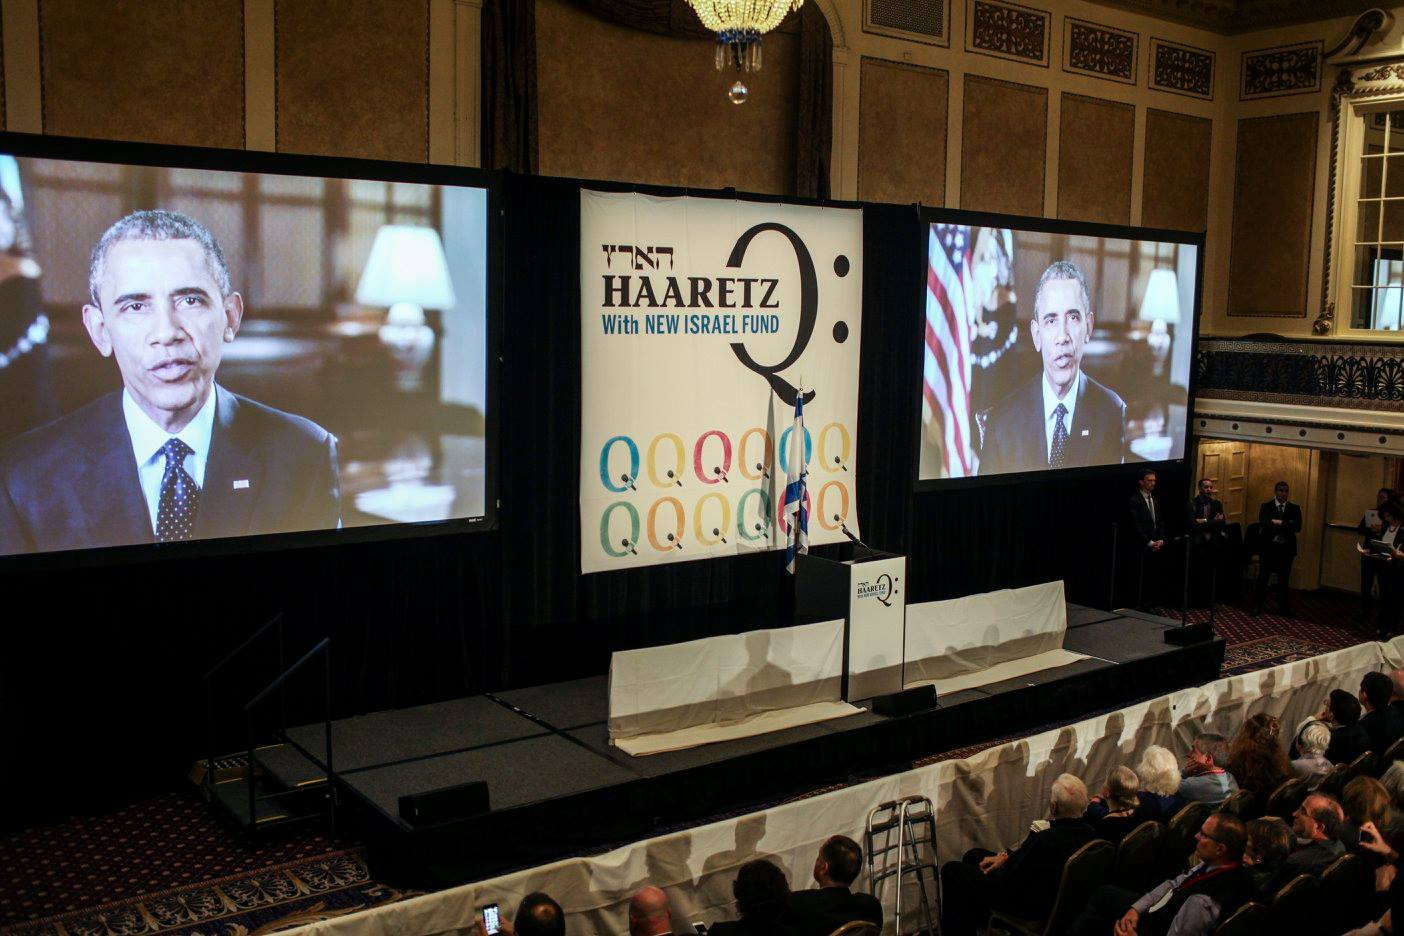 Barack Obama at HaaretzQ with New Israel Fund